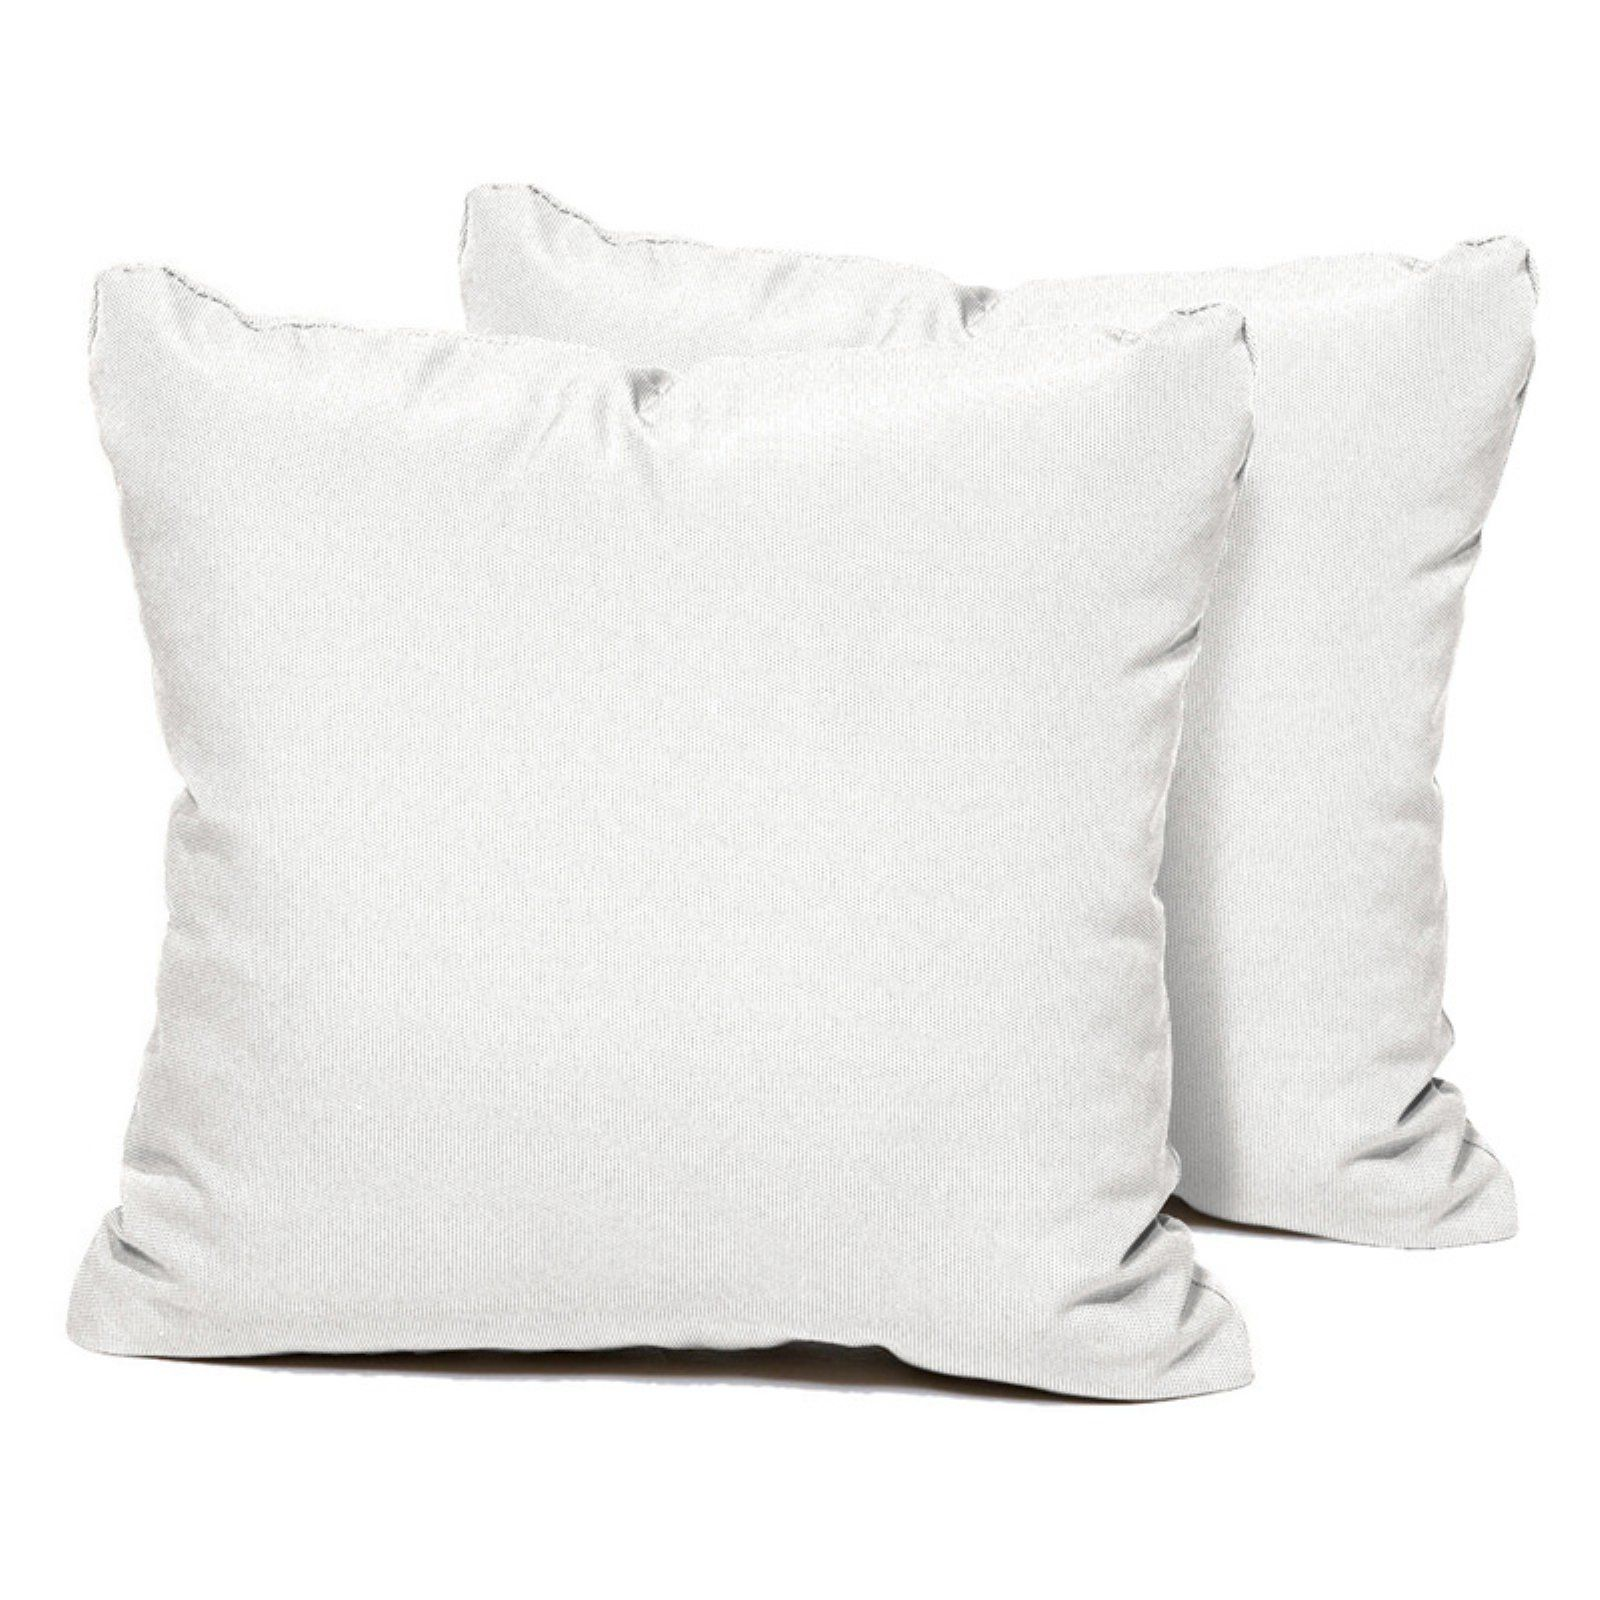 Tk Classics Decorative Square Outdoor Throw Pillows White In 2019